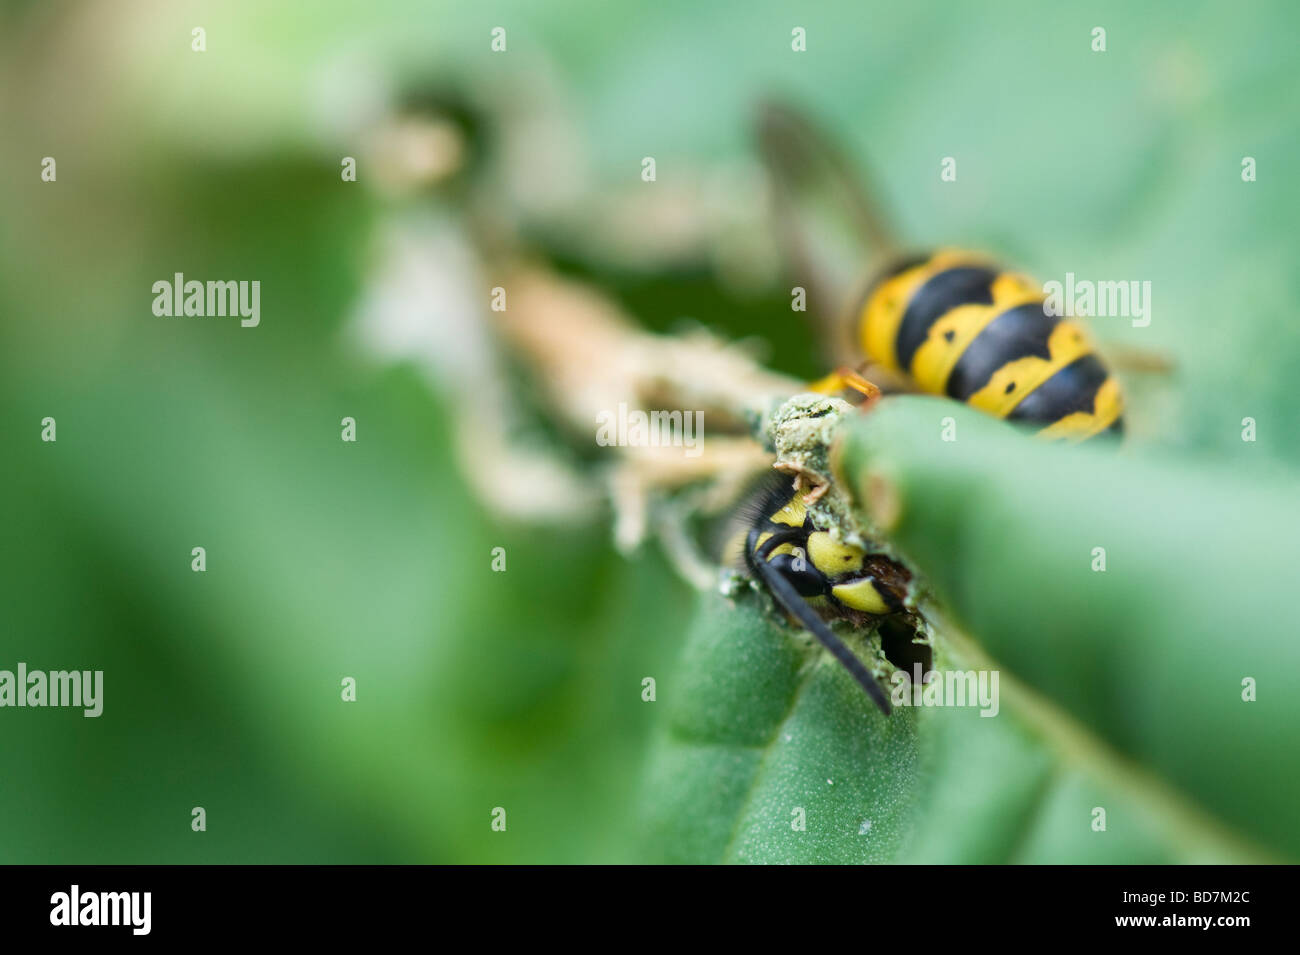 Vespula vulgaris. Wasps eating rhubarb leaves in an English garden. Gathering plant material for nest building Stock Photo